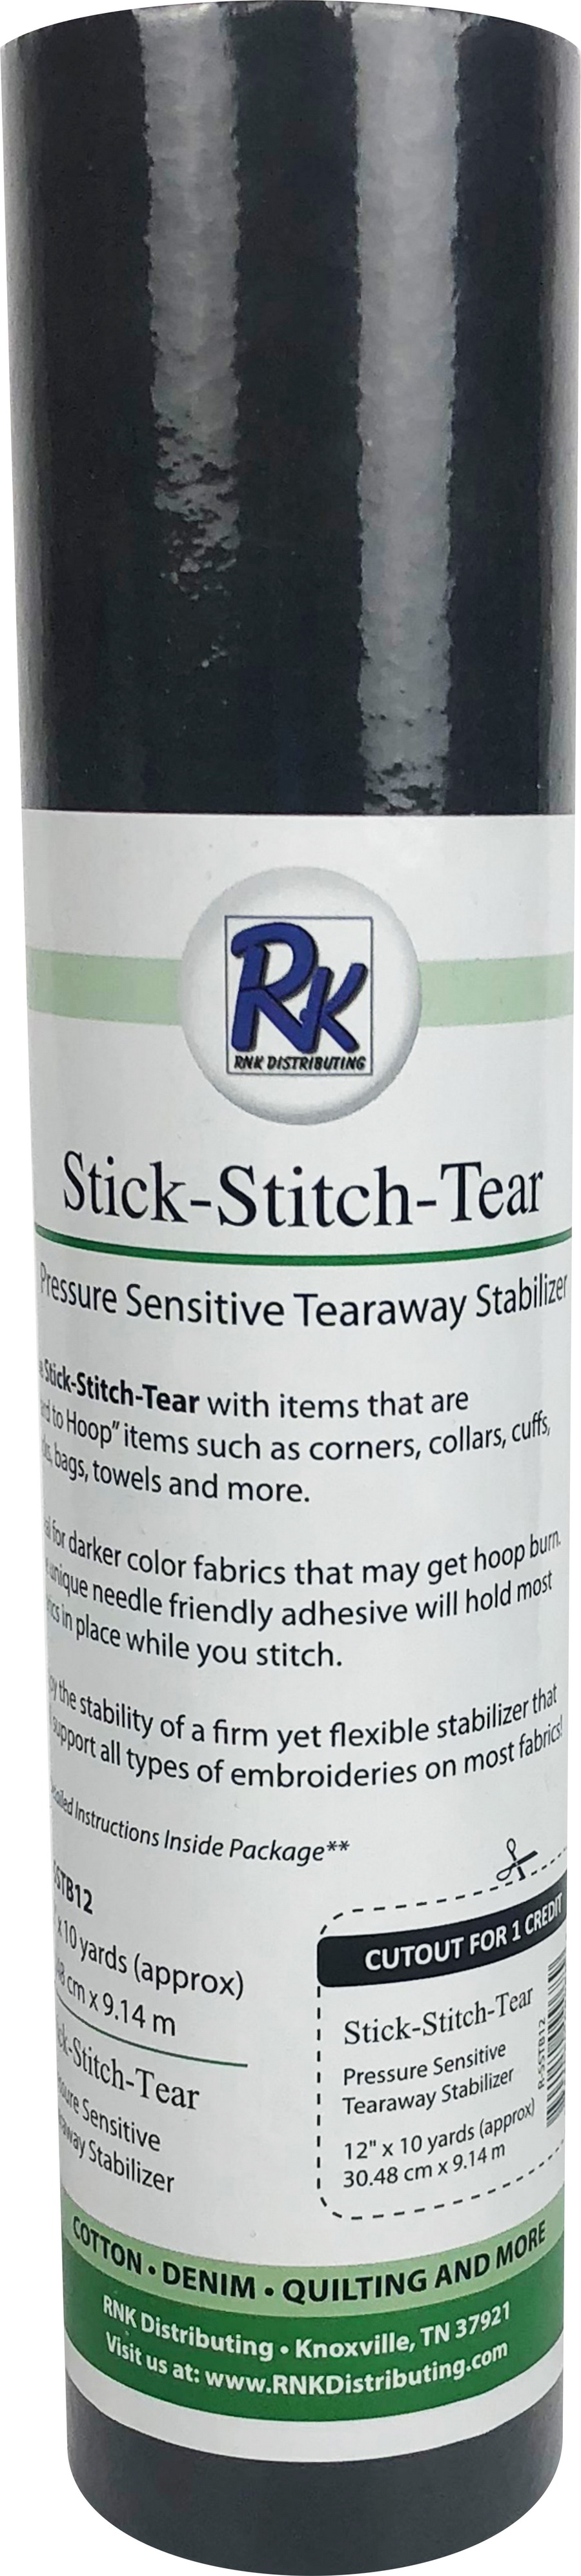 RNK Distributing Stick-Stitch-Tear Stabilzer (BLACK)